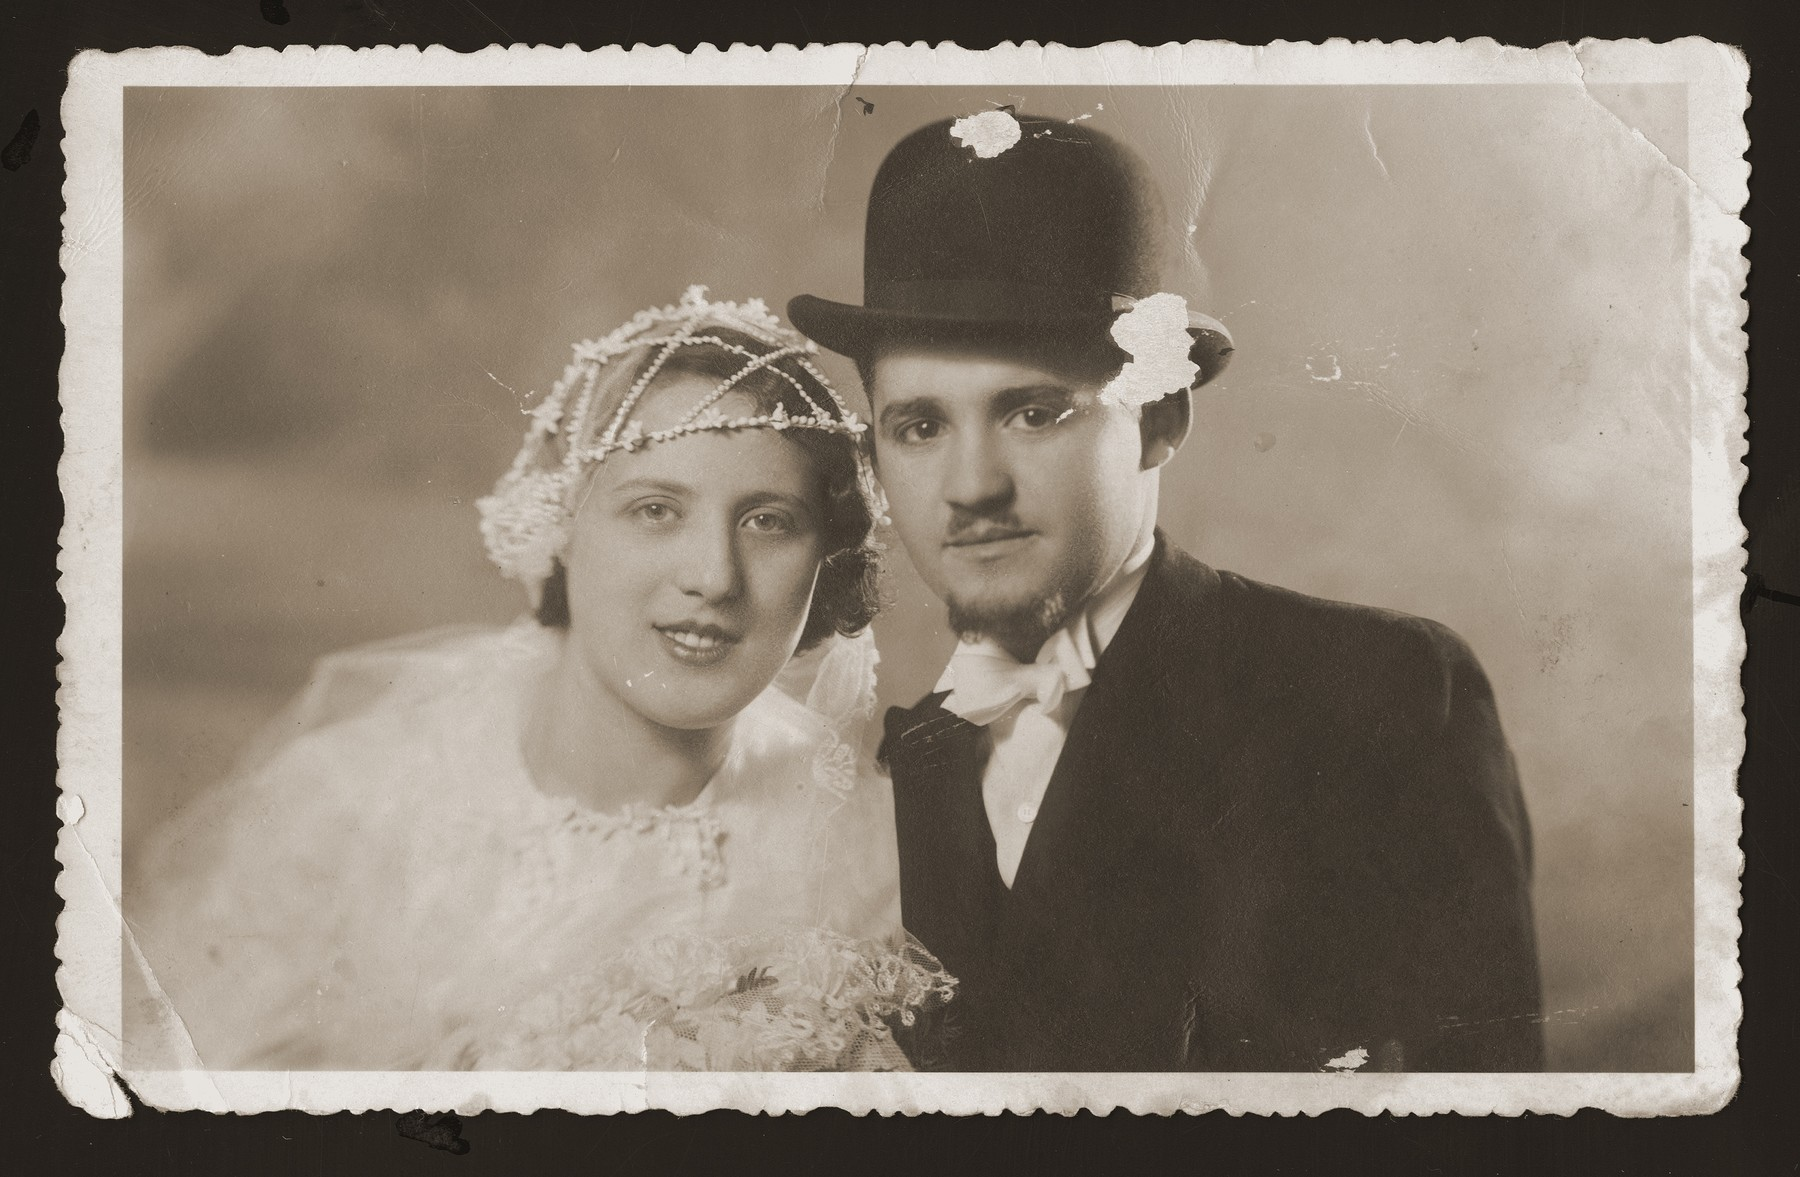 Wedding portrait of Gabor and Tubi (Goldstein) Berkovic.   He served as a cantor, originally as his brother-in-law's assistant.  Their two sons, Emil and Eddie, both became cantors as well. The family survived the Holocaust hiding in a farm near Senica.